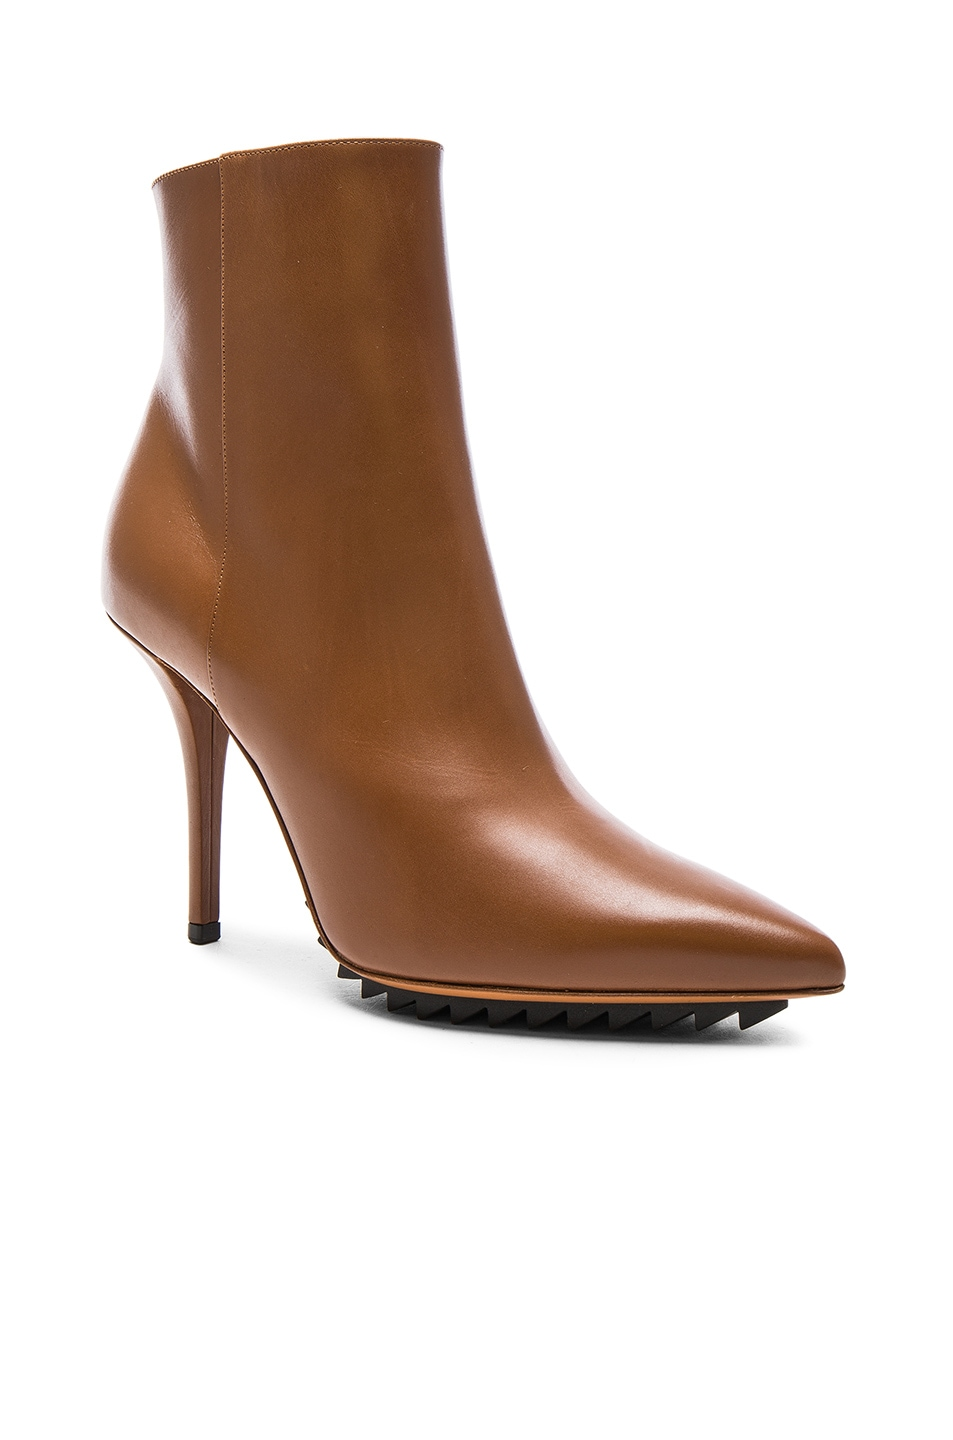 Image 2 of Givenchy Iron Ankle Leather Booties in Camel